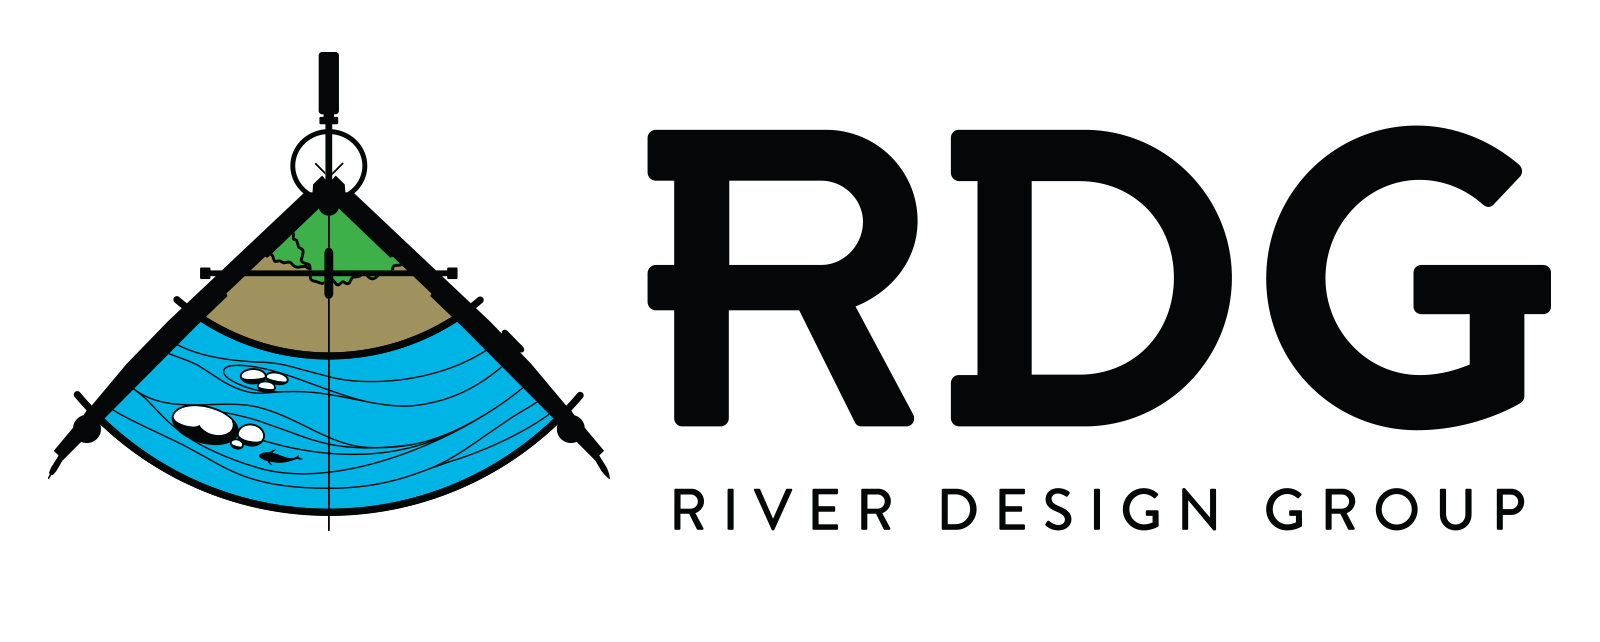 river-design-group-silver